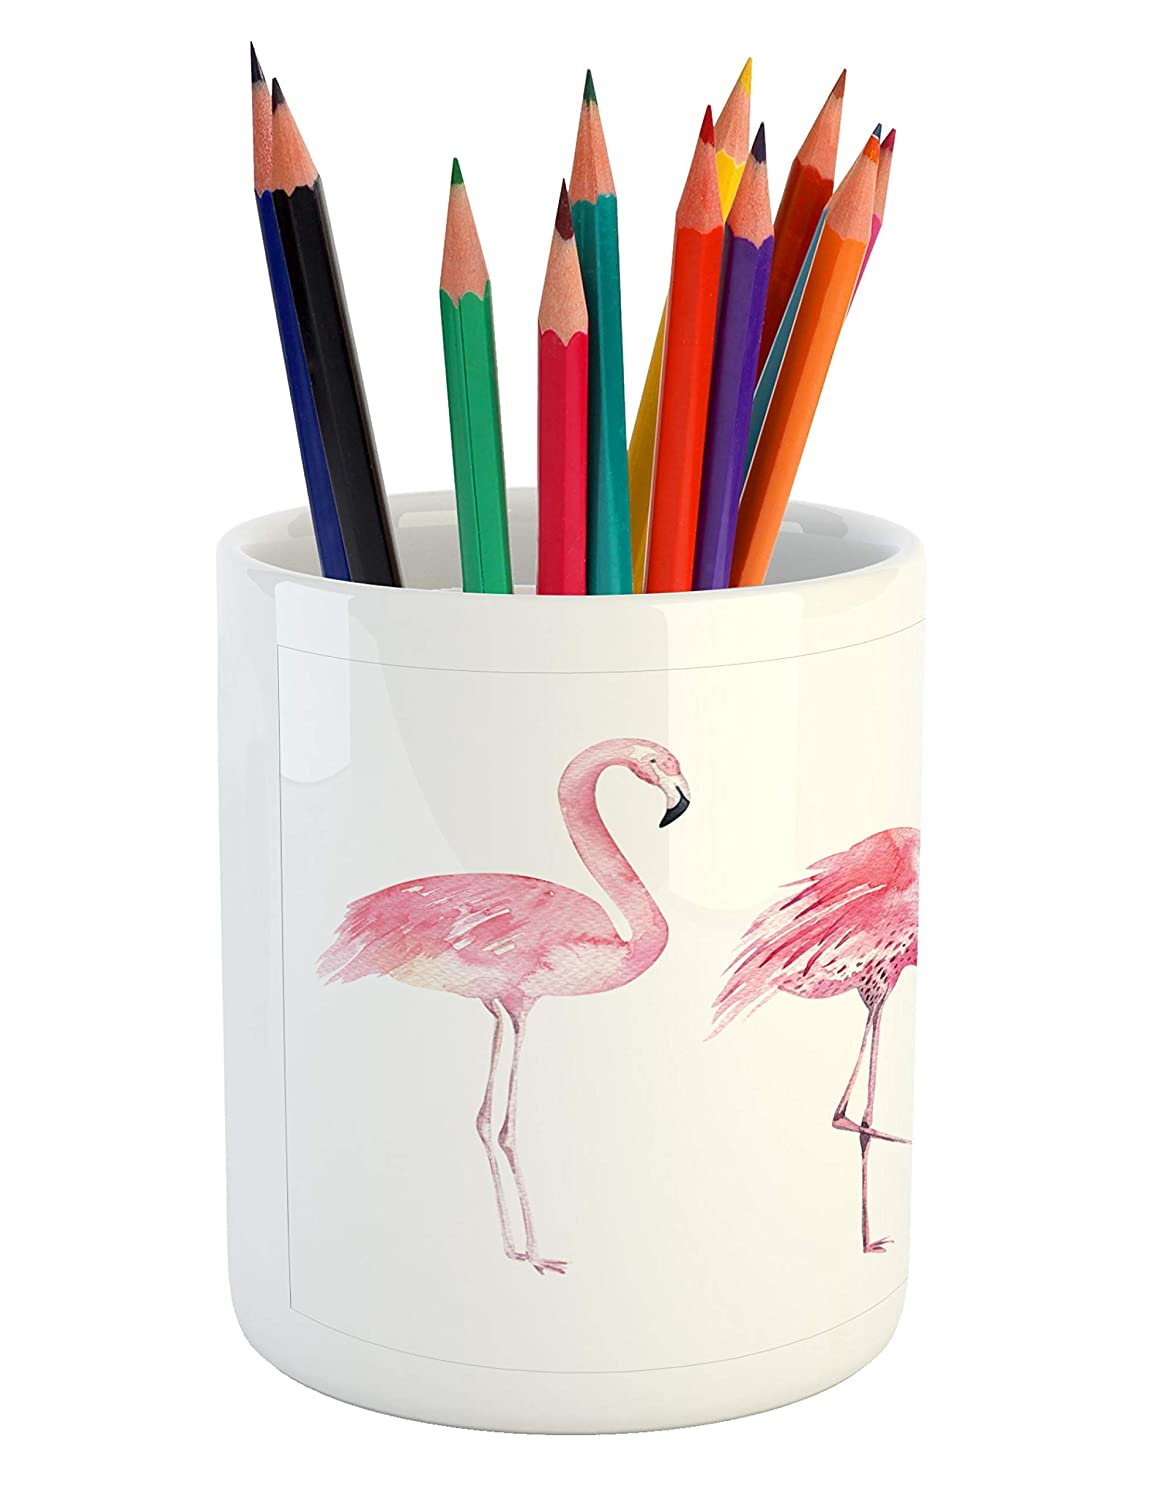 Lunarable Pink Flamingo Pencil Pen Holder Printed Ceramic Pencil Pen Holder for Desk Office Accessory Exotic Birds Watercolors Nature of Brazil Rainforests Aloha Wildlife Pale Pink and White